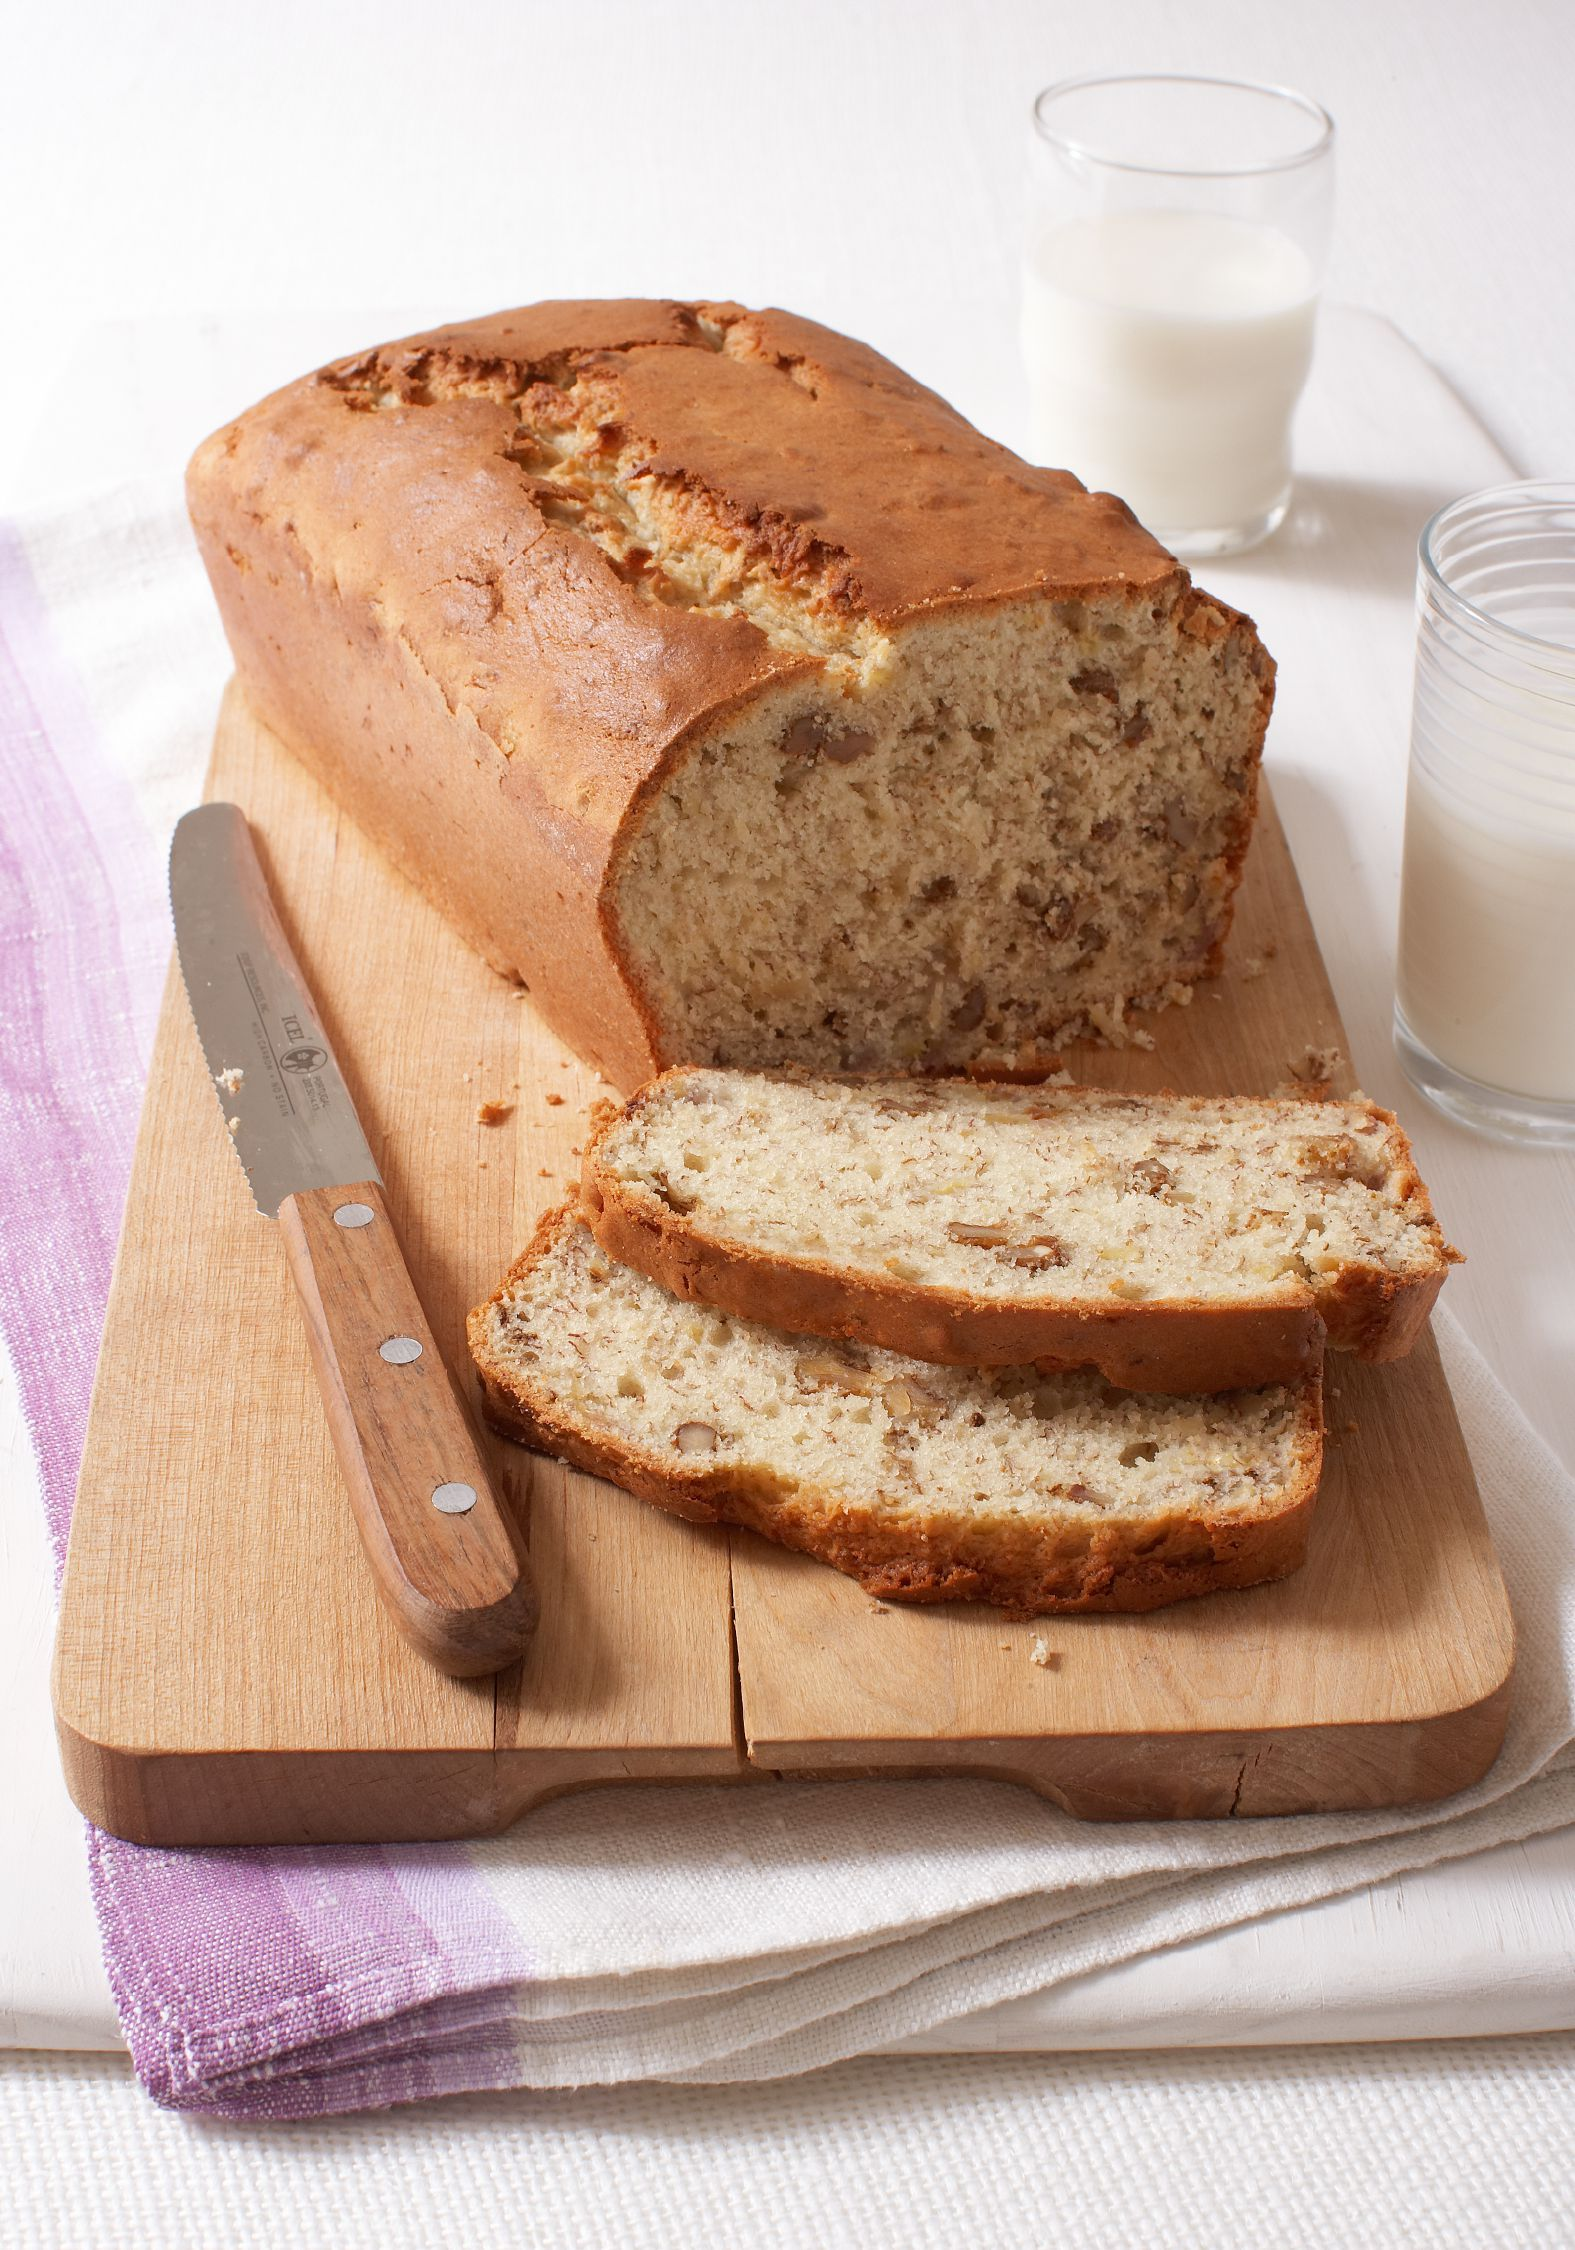 Classic Sour Cream Banana Bread Only Basic Kitchen Ingredients Are Needed To Make This Easy Classic Sour Crea Kraft Recipes Banana Bread Recipes Banana Bread